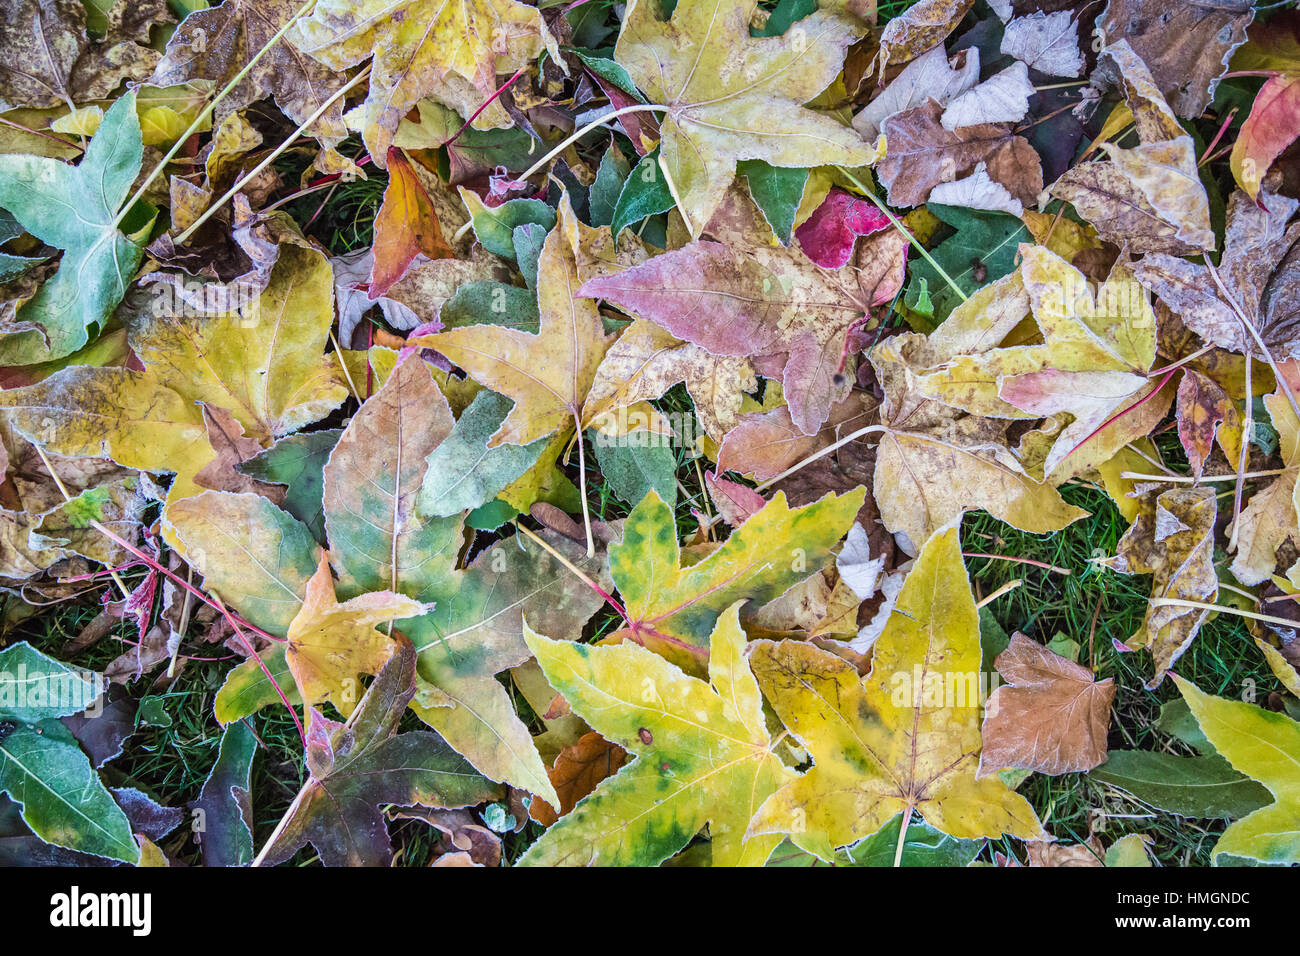 Fallen maple leaves on the ground in a rainbow of colours. There is frost around their edges. They a curly and crispy. - Stock Image